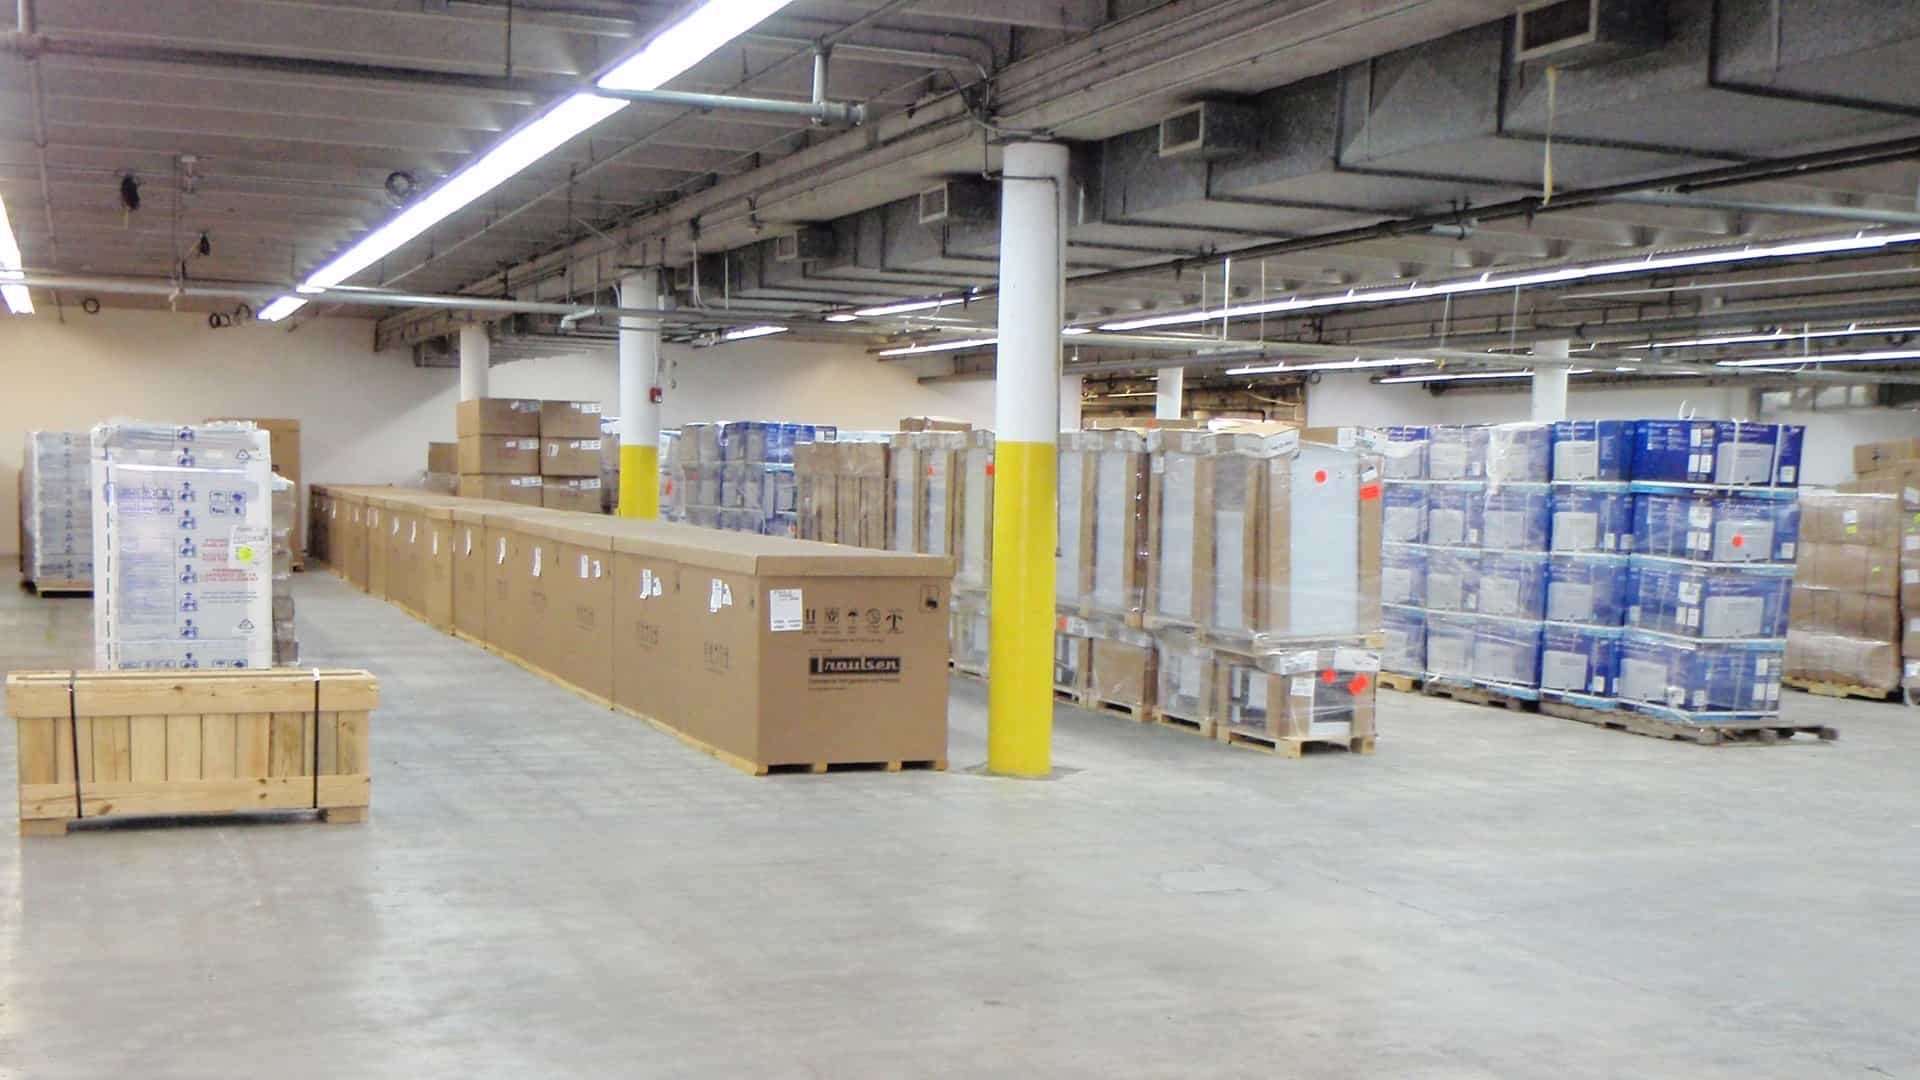 Miami Florida Packing and Crating Warehouse